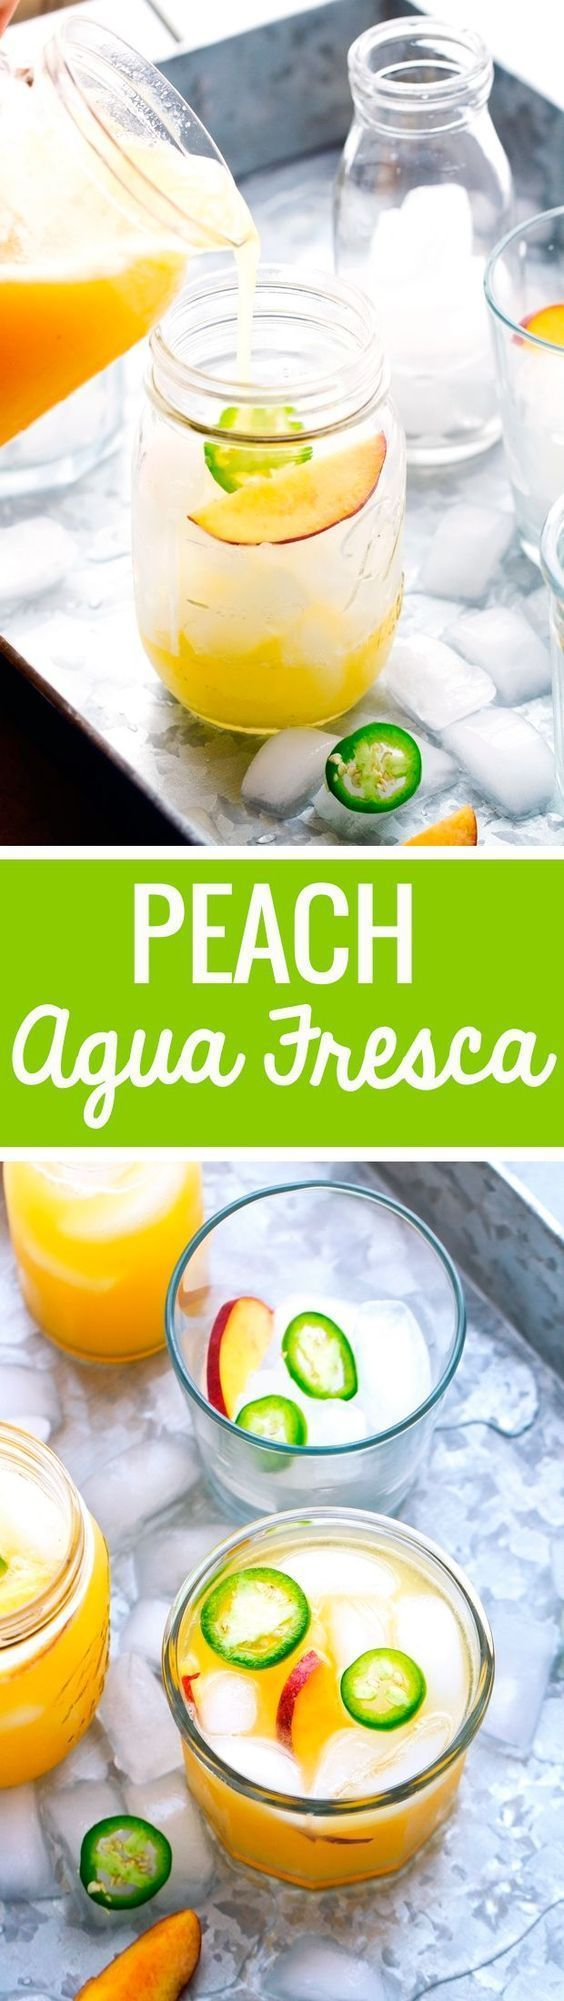 Peach Agua Fresca Alcohol Free Beverage Recipe via LIttle Spice Jar - A cool and refreshing drink that's refined sugar free and perfect to chill out with this summer! The BEST Easy Non-Alcoholic Drinks Recipes - Creative Mocktails and Family Friendly, Alcohol-Free, Big Batch Party Beverages for a Crowd!